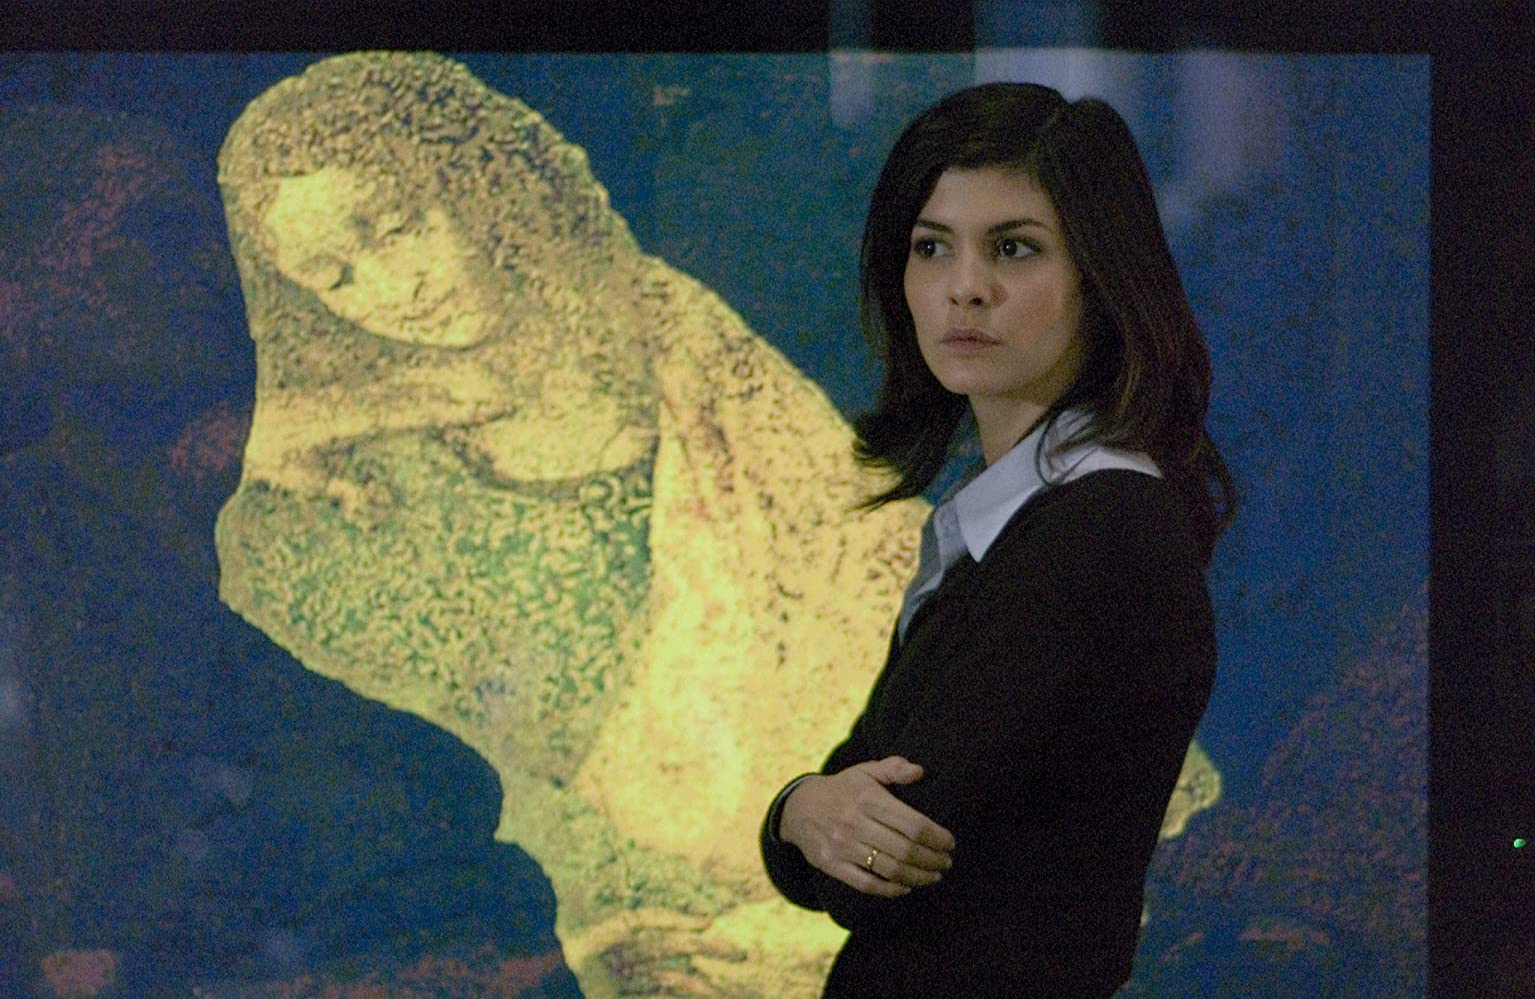 Audrey Tautou in The Da Vinci Code (2006)